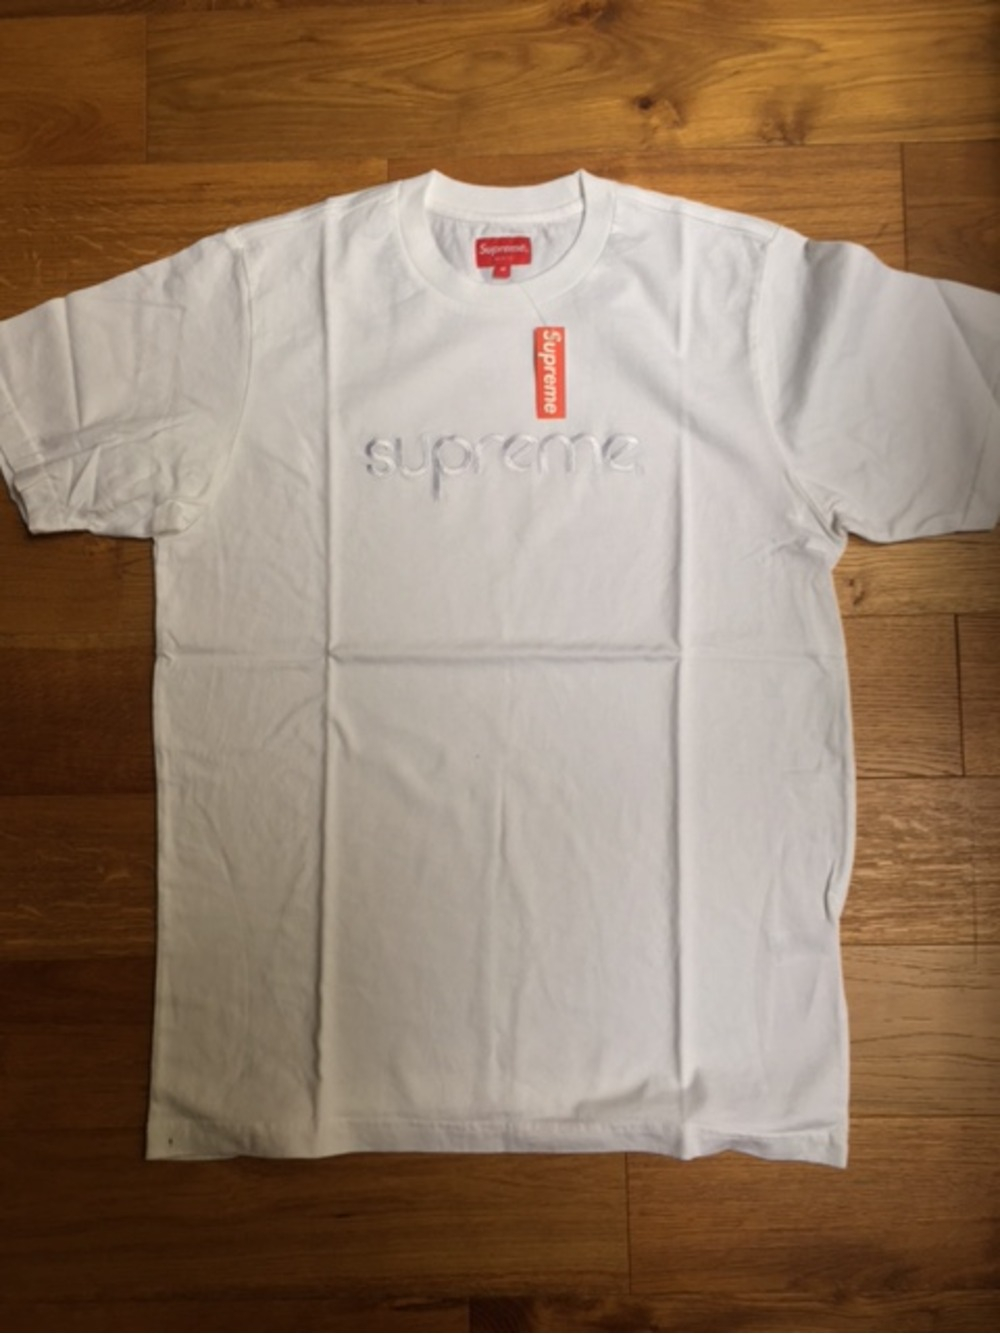 Suprme nyc tonal embroidered tee sz m tshirt brand new box